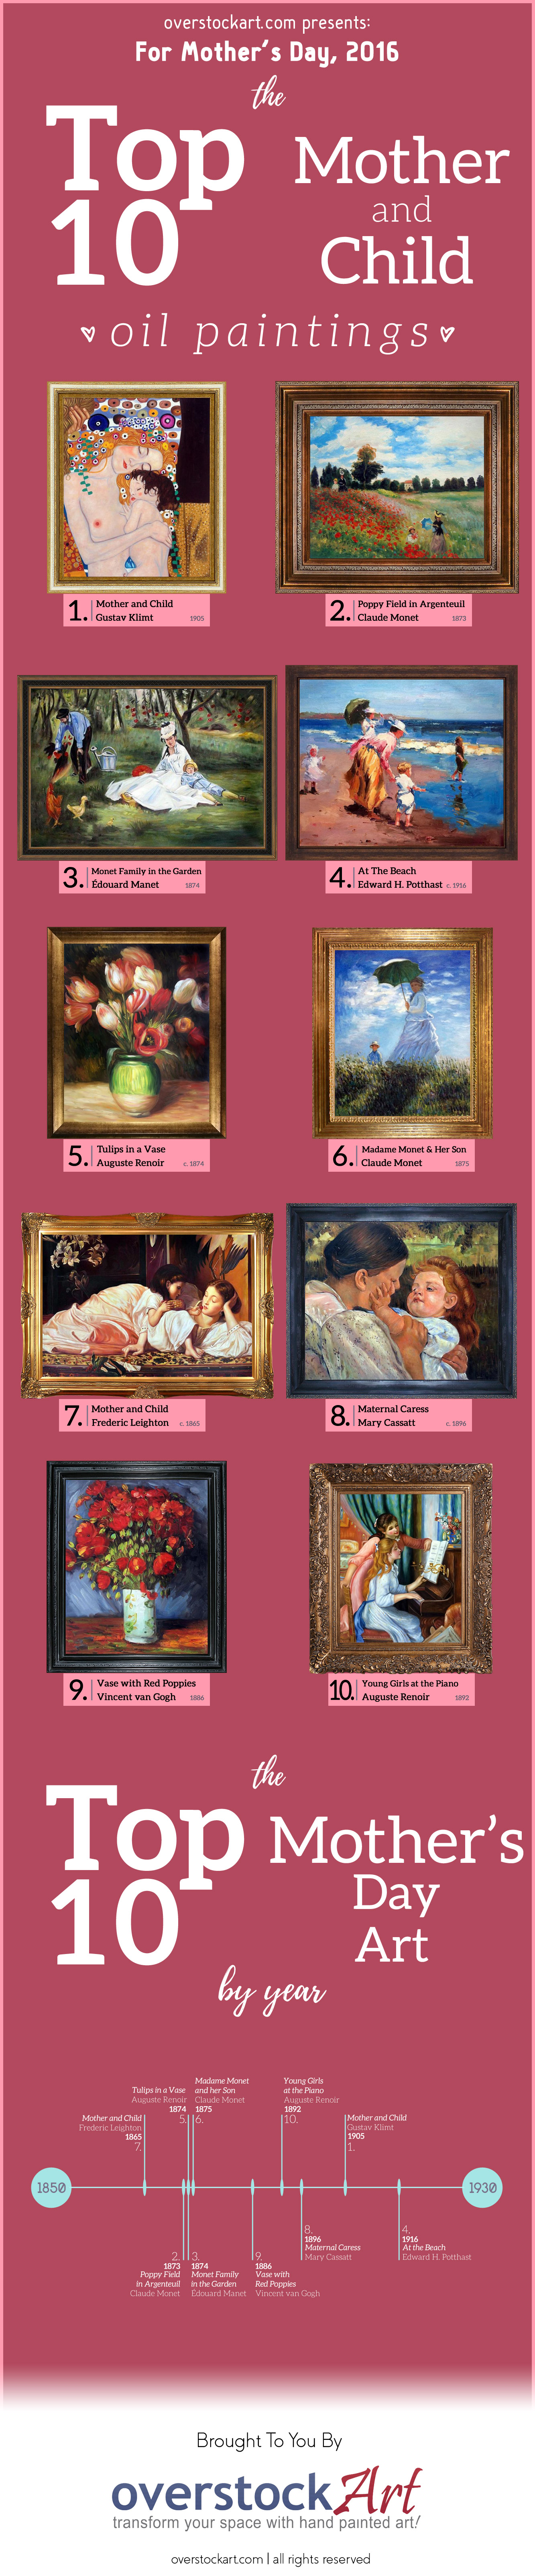 Top-Ten-Art-For-Mothers-Day-2016-Infographic